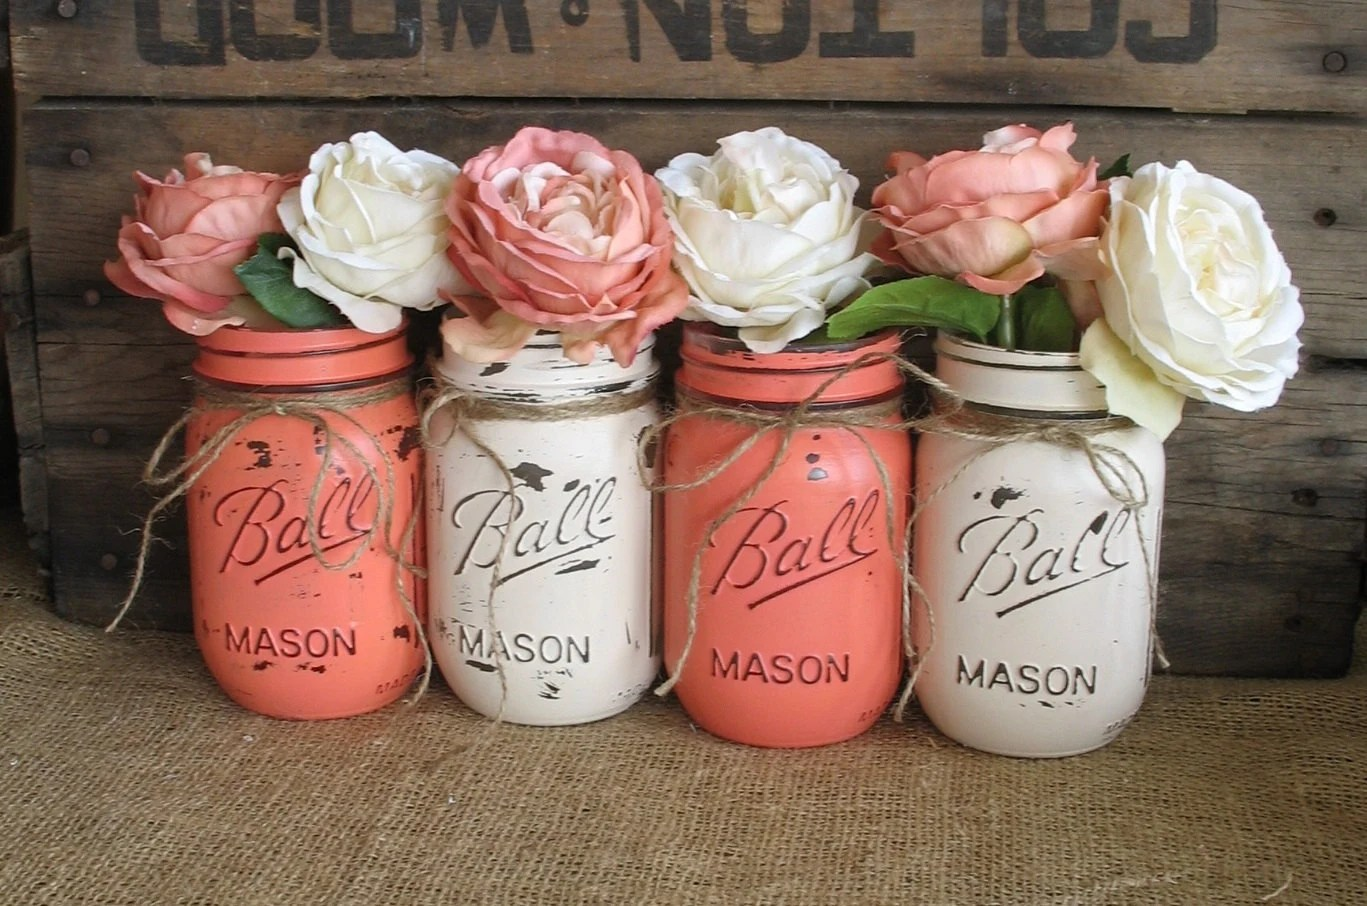 coral centerpiece wedding centerpieces for sale SALE Set of 4 Pint Mason Jars Ball jars Painted Mason Jars Flower Vases Rustic Wedding Centerpieces Coral And Creme Mason Jars